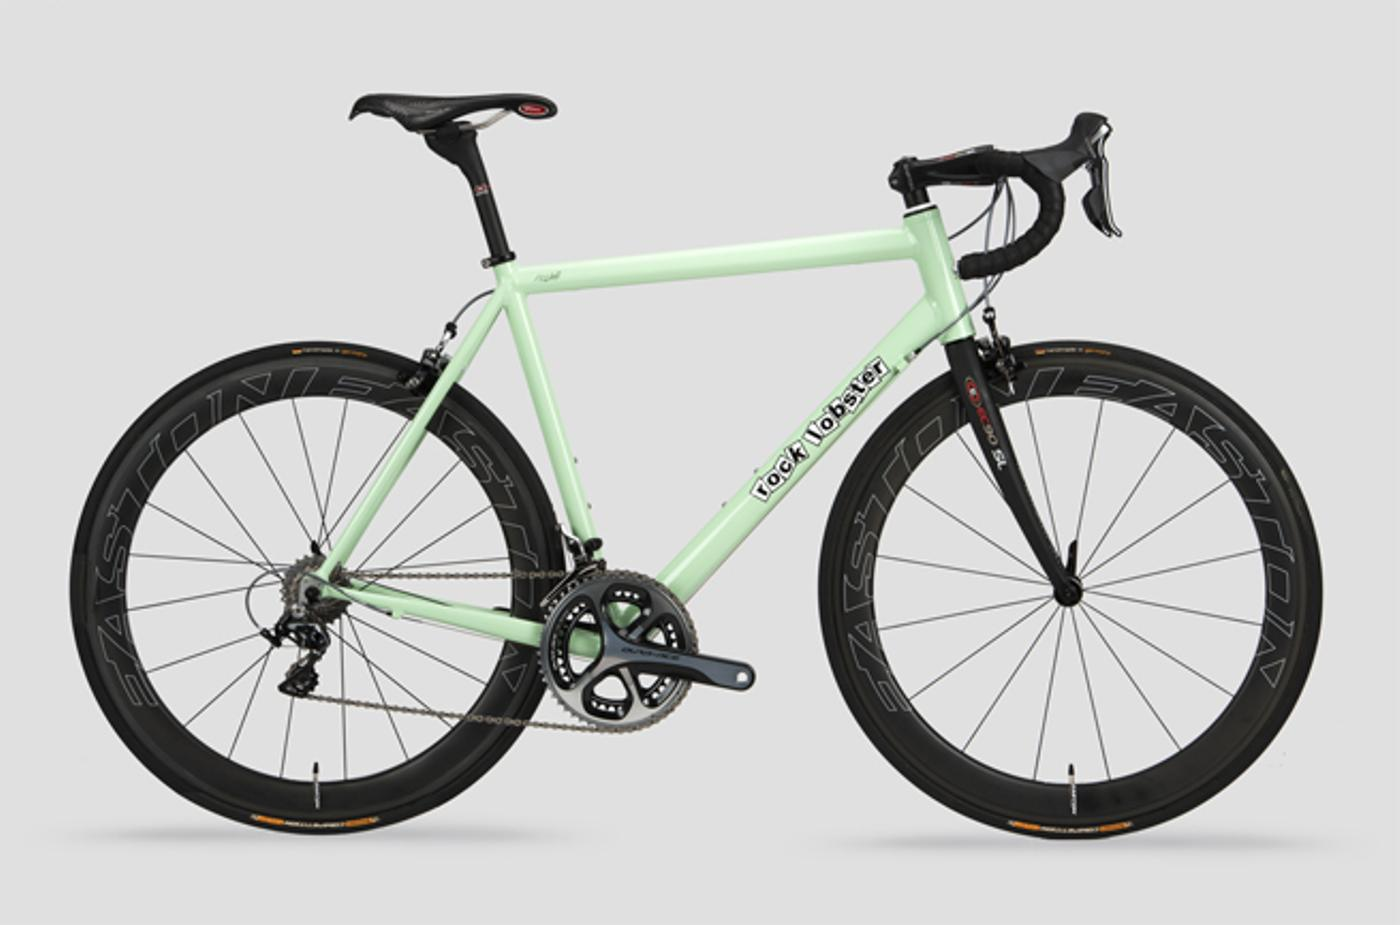 Easton Cycling: Win this Rock Lobster Dream Bike